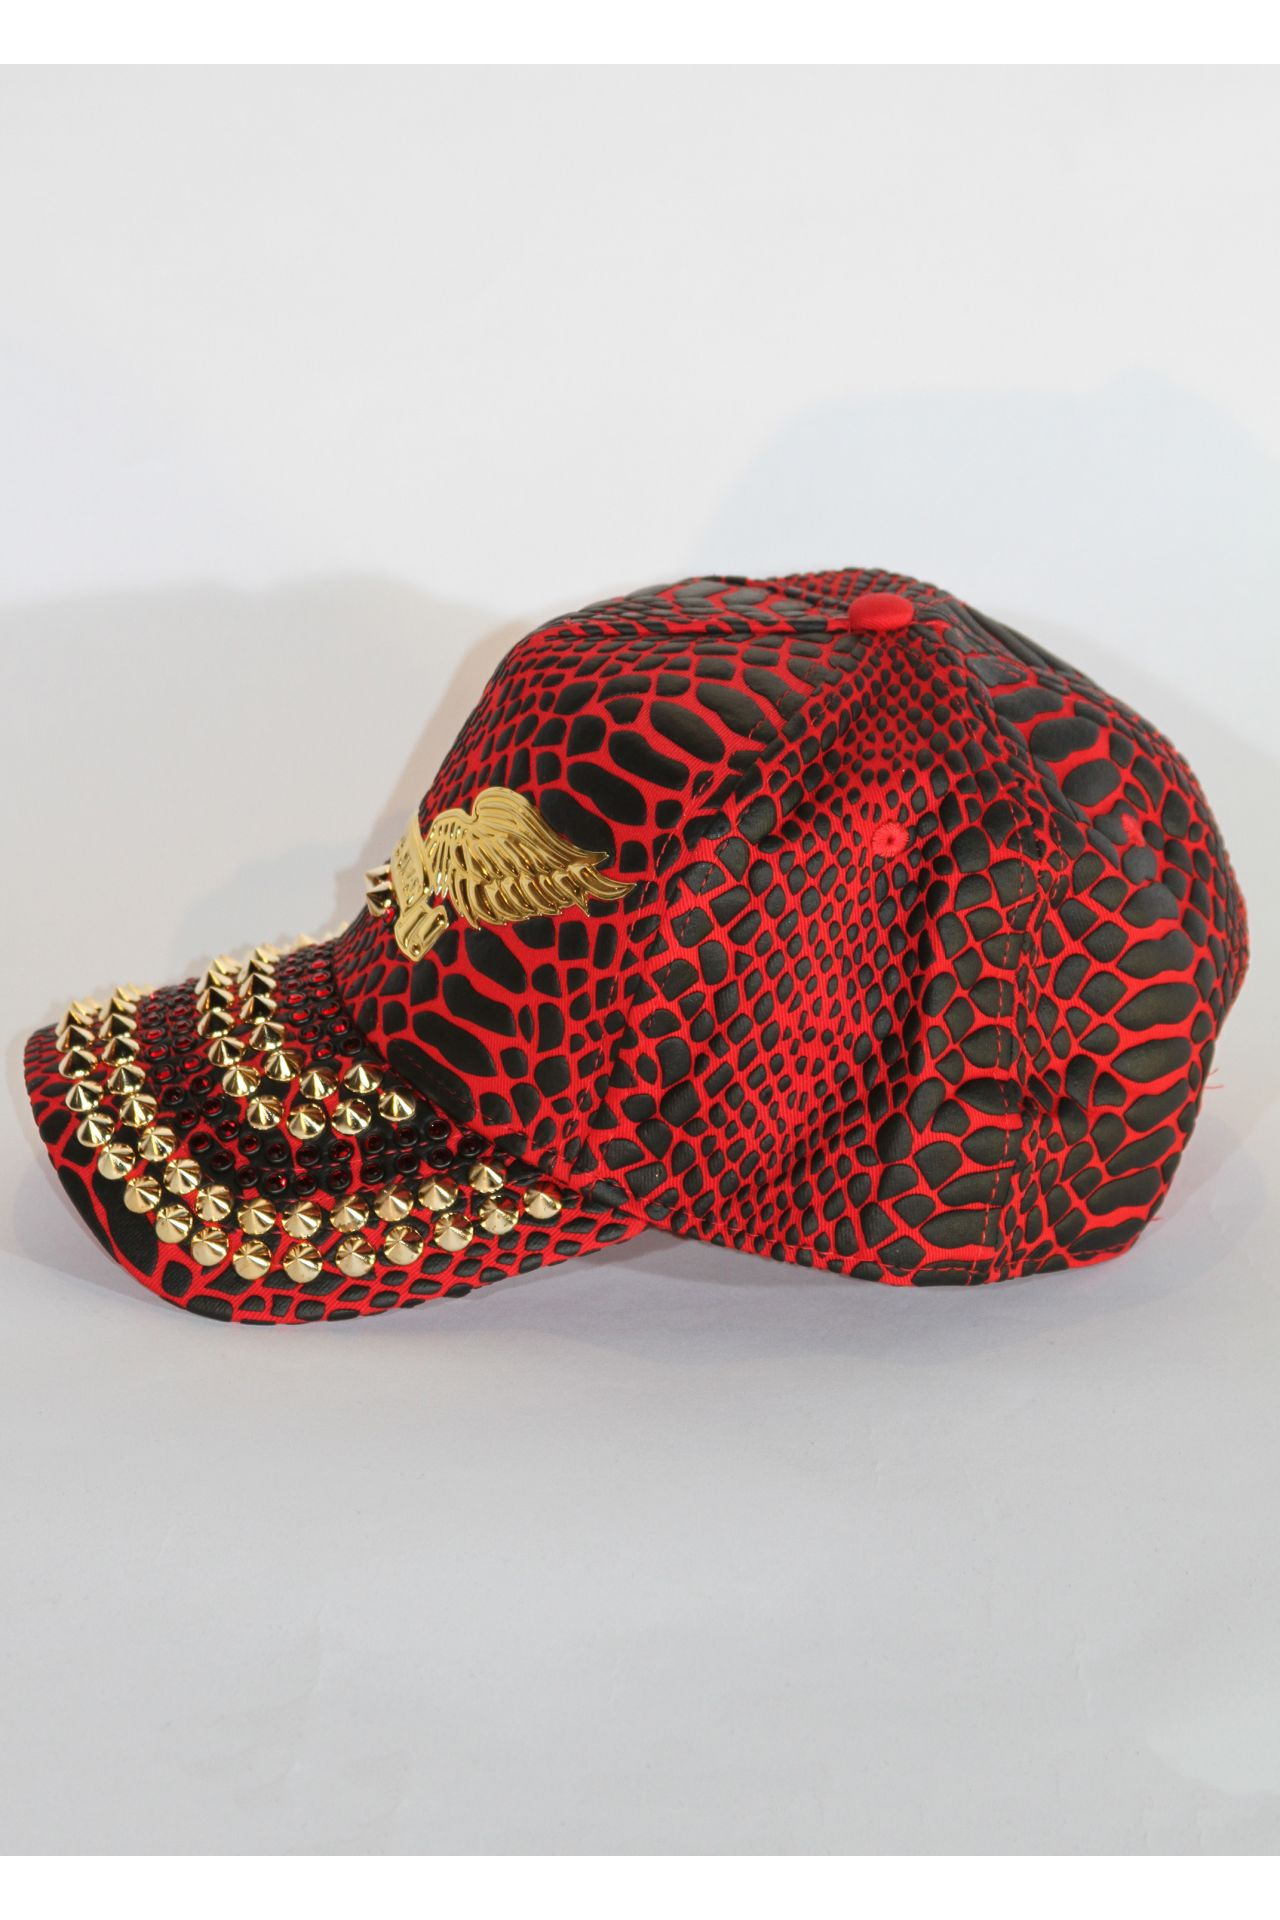 CRACKLE HAT IN RED BLACK WITH RED SW STUDS